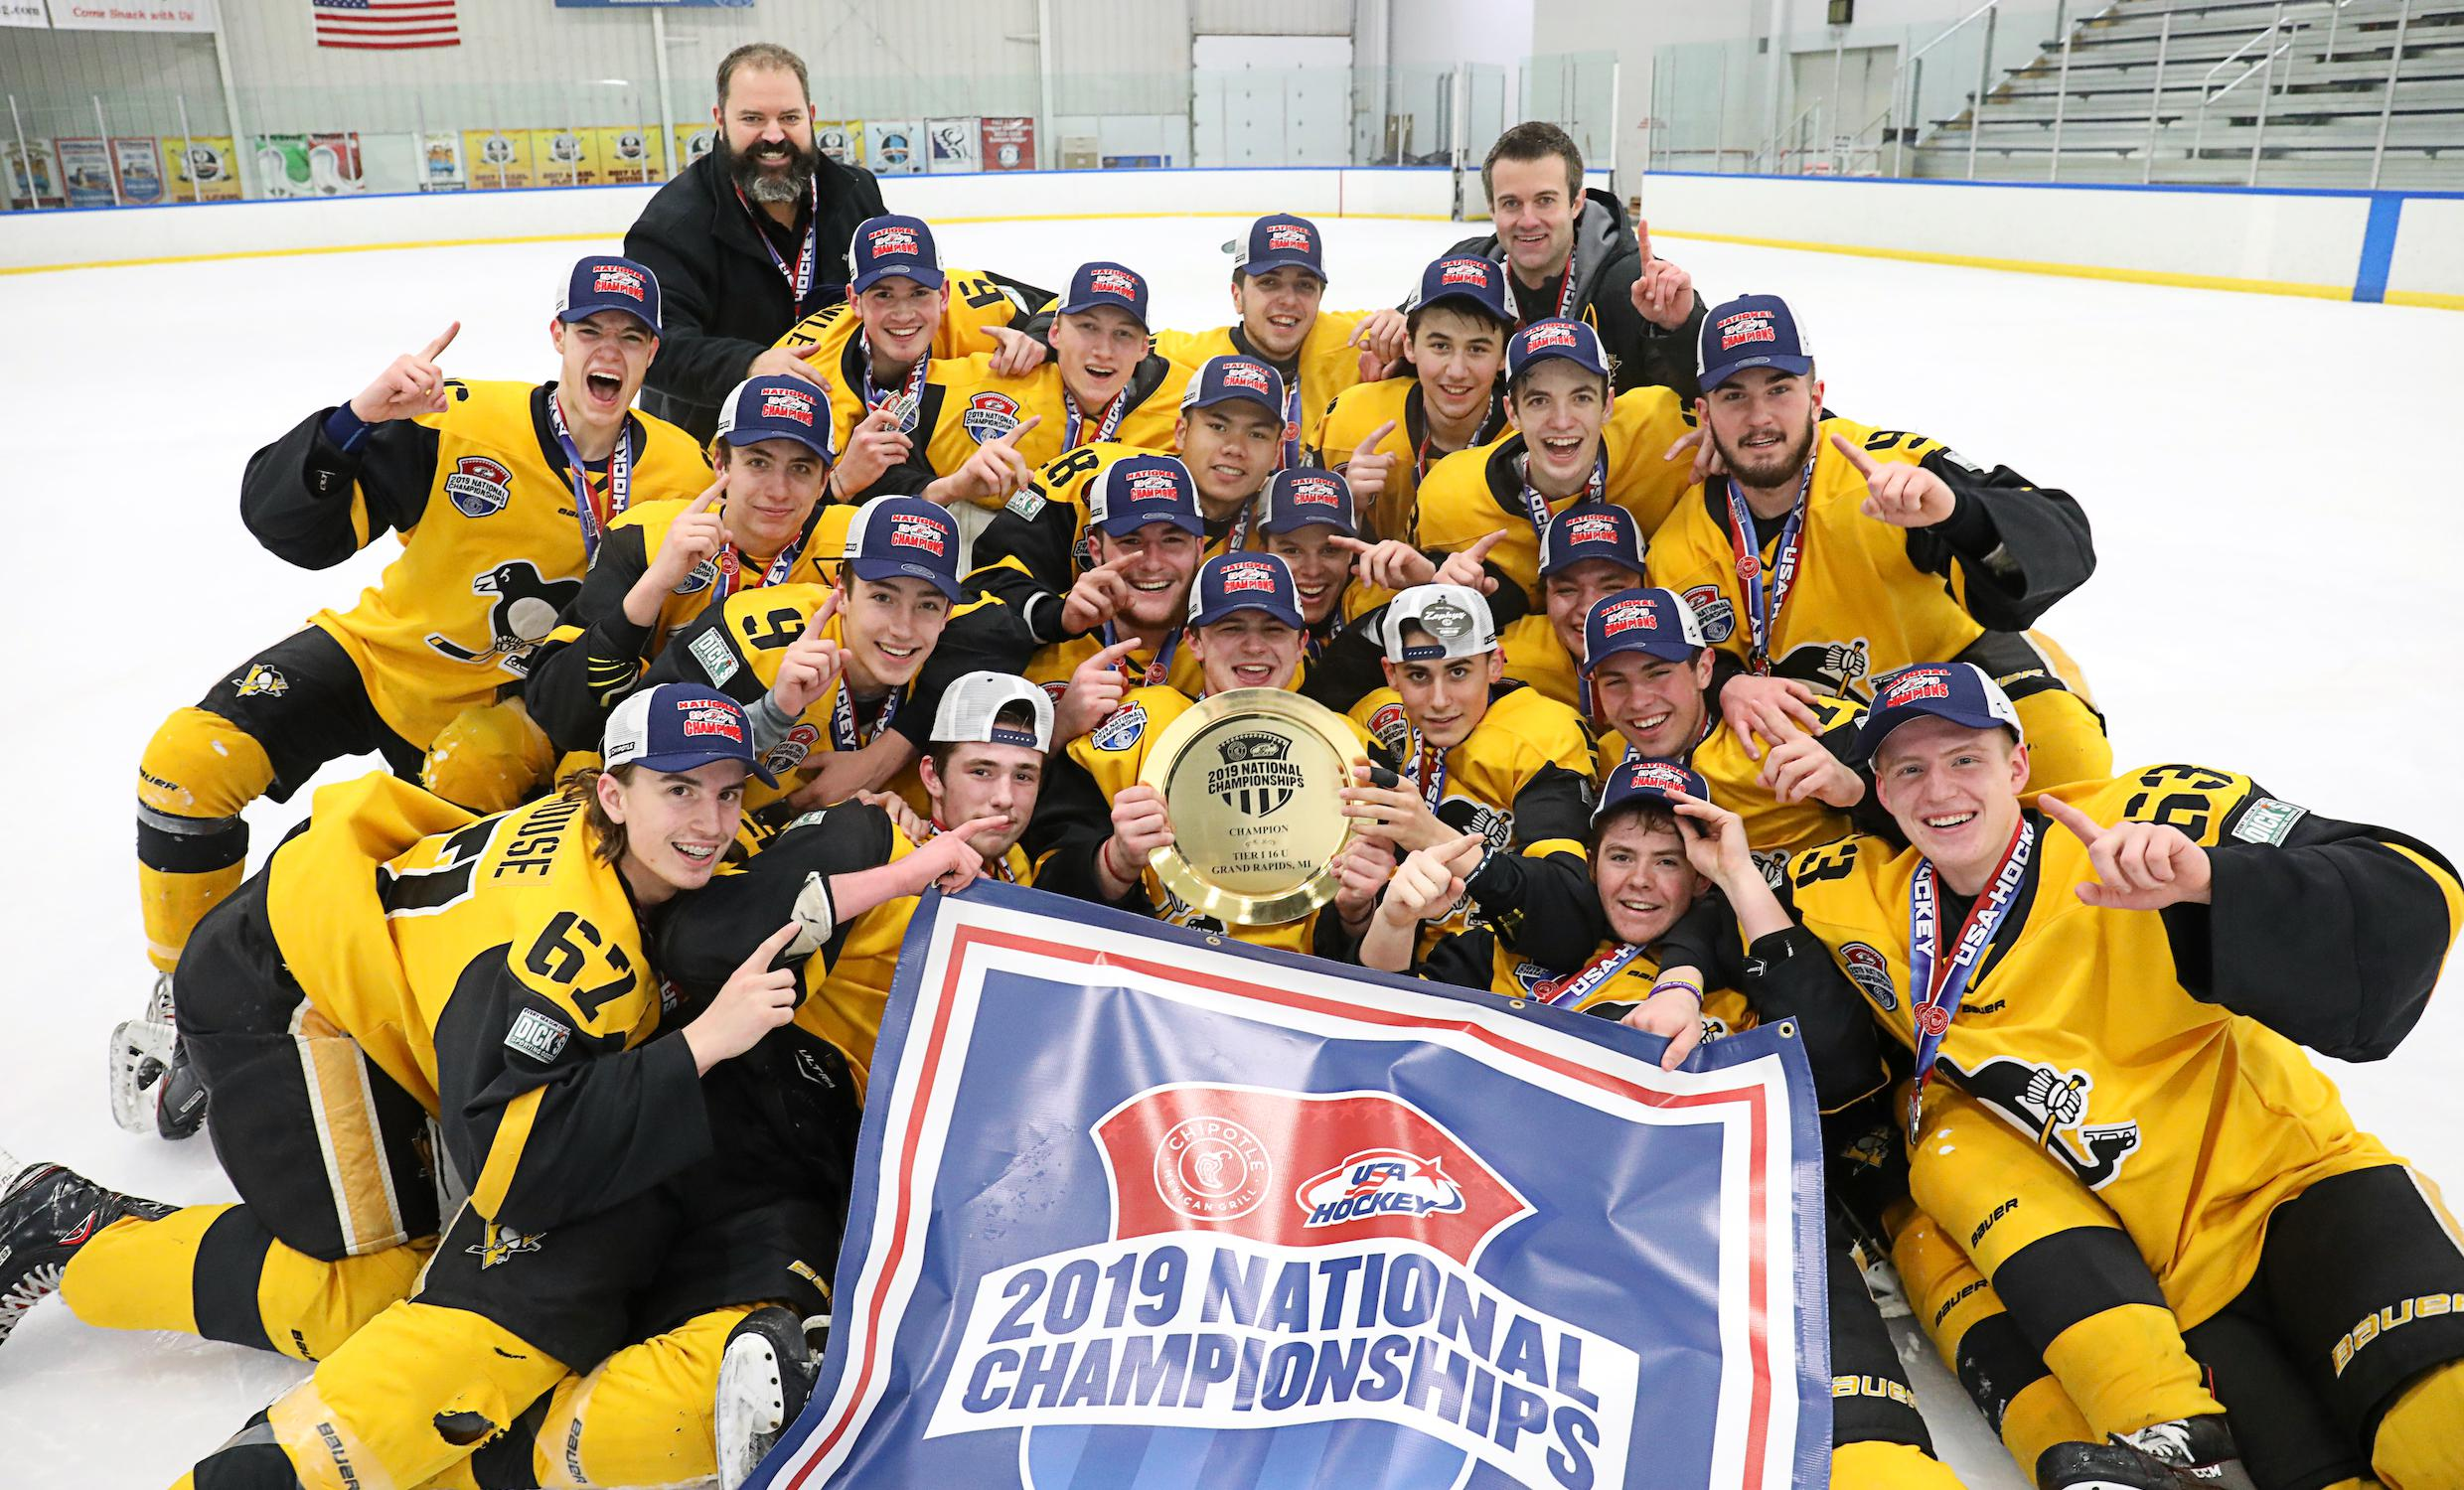 Pittsburgh Pens Elite Top Yale Jr Bulldogs To Claim Youth Tier I